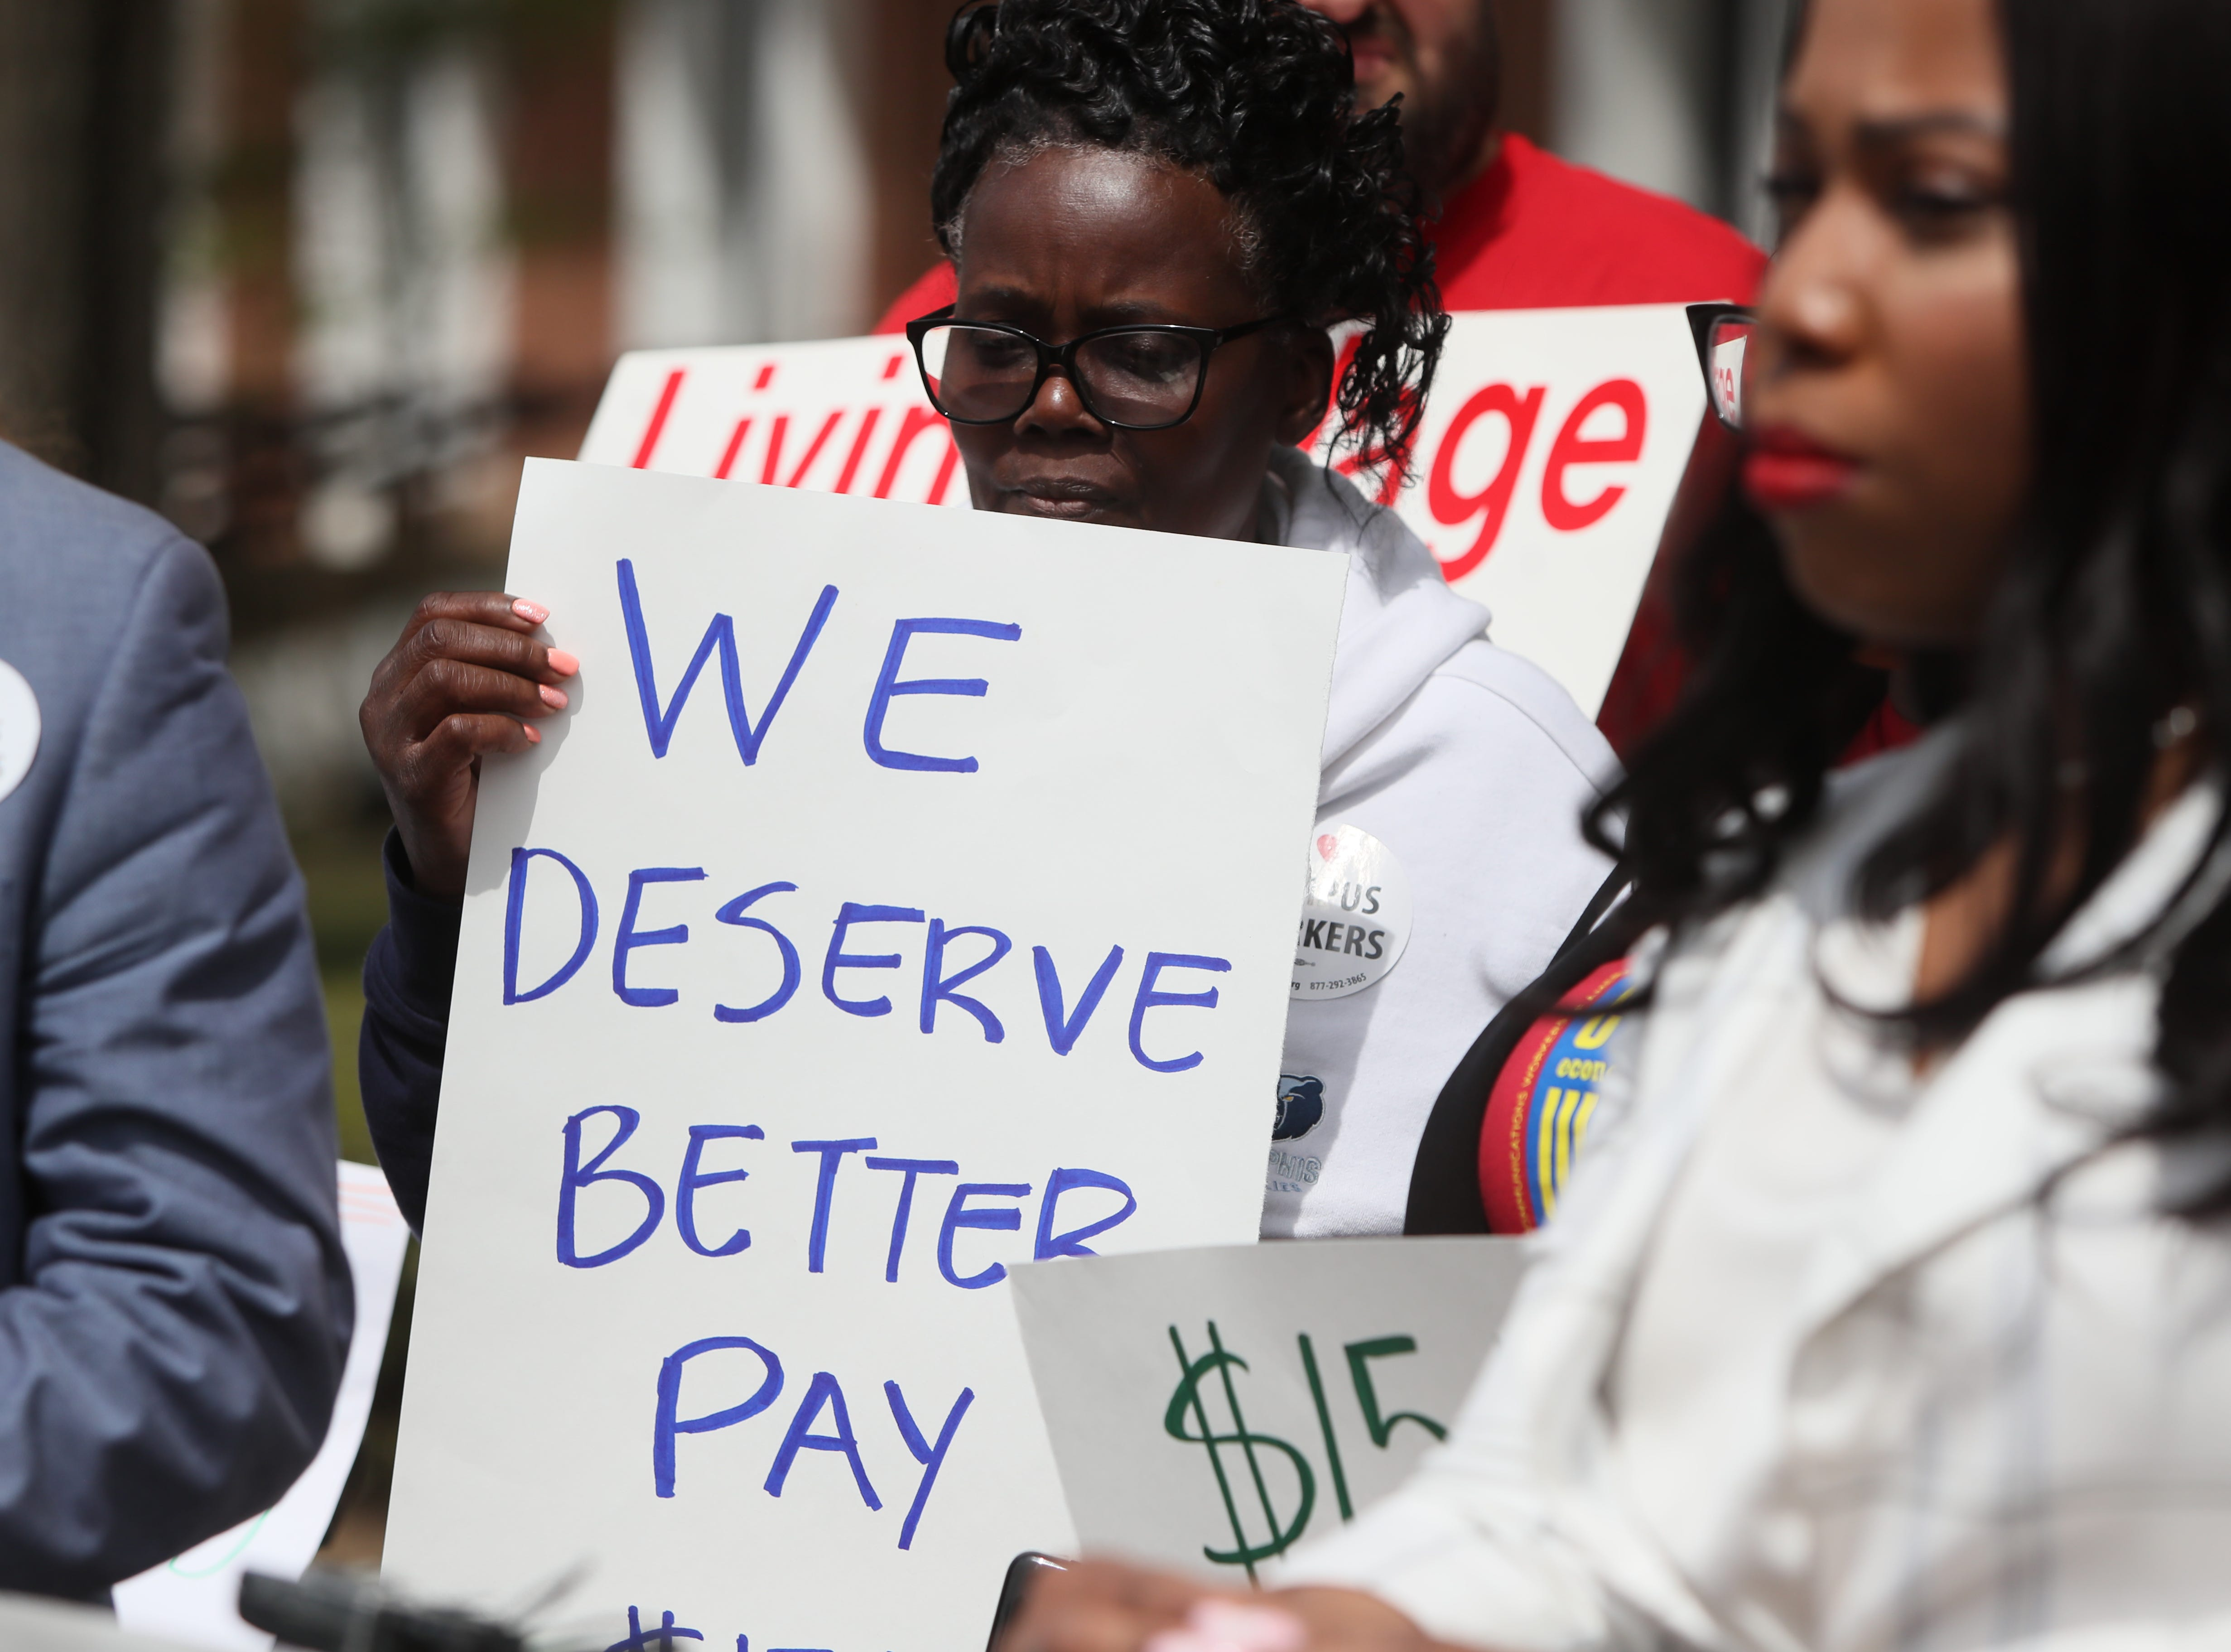 People gather for a press conference to address implementing a $15 minimum hourly wage for all campus employees at the University of Memphis on Friday, April 12, 2019.